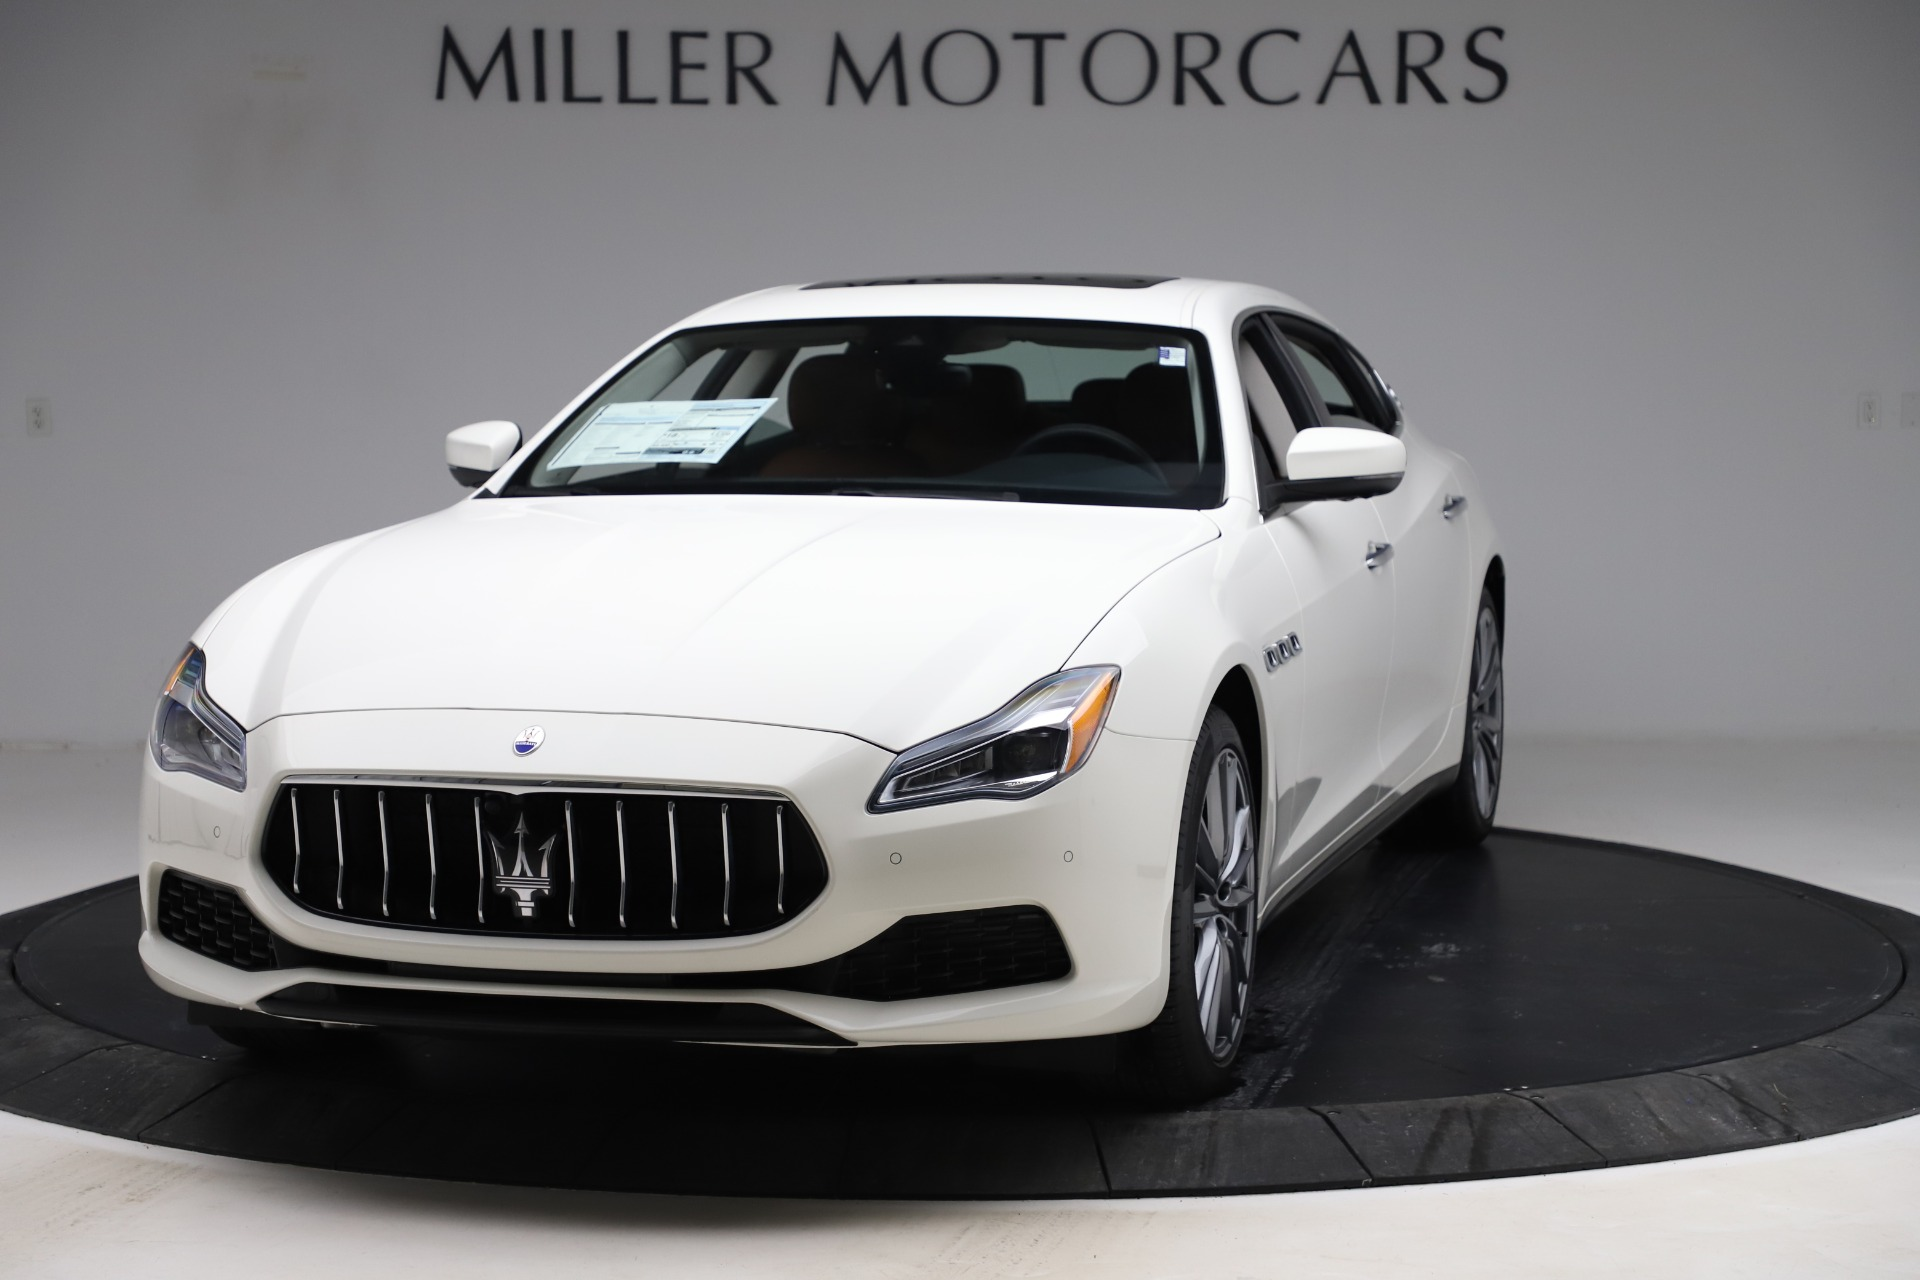 New 2019 Maserati Quattroporte S Q4 for sale $121,065 at Maserati of Greenwich in Greenwich CT 06830 1